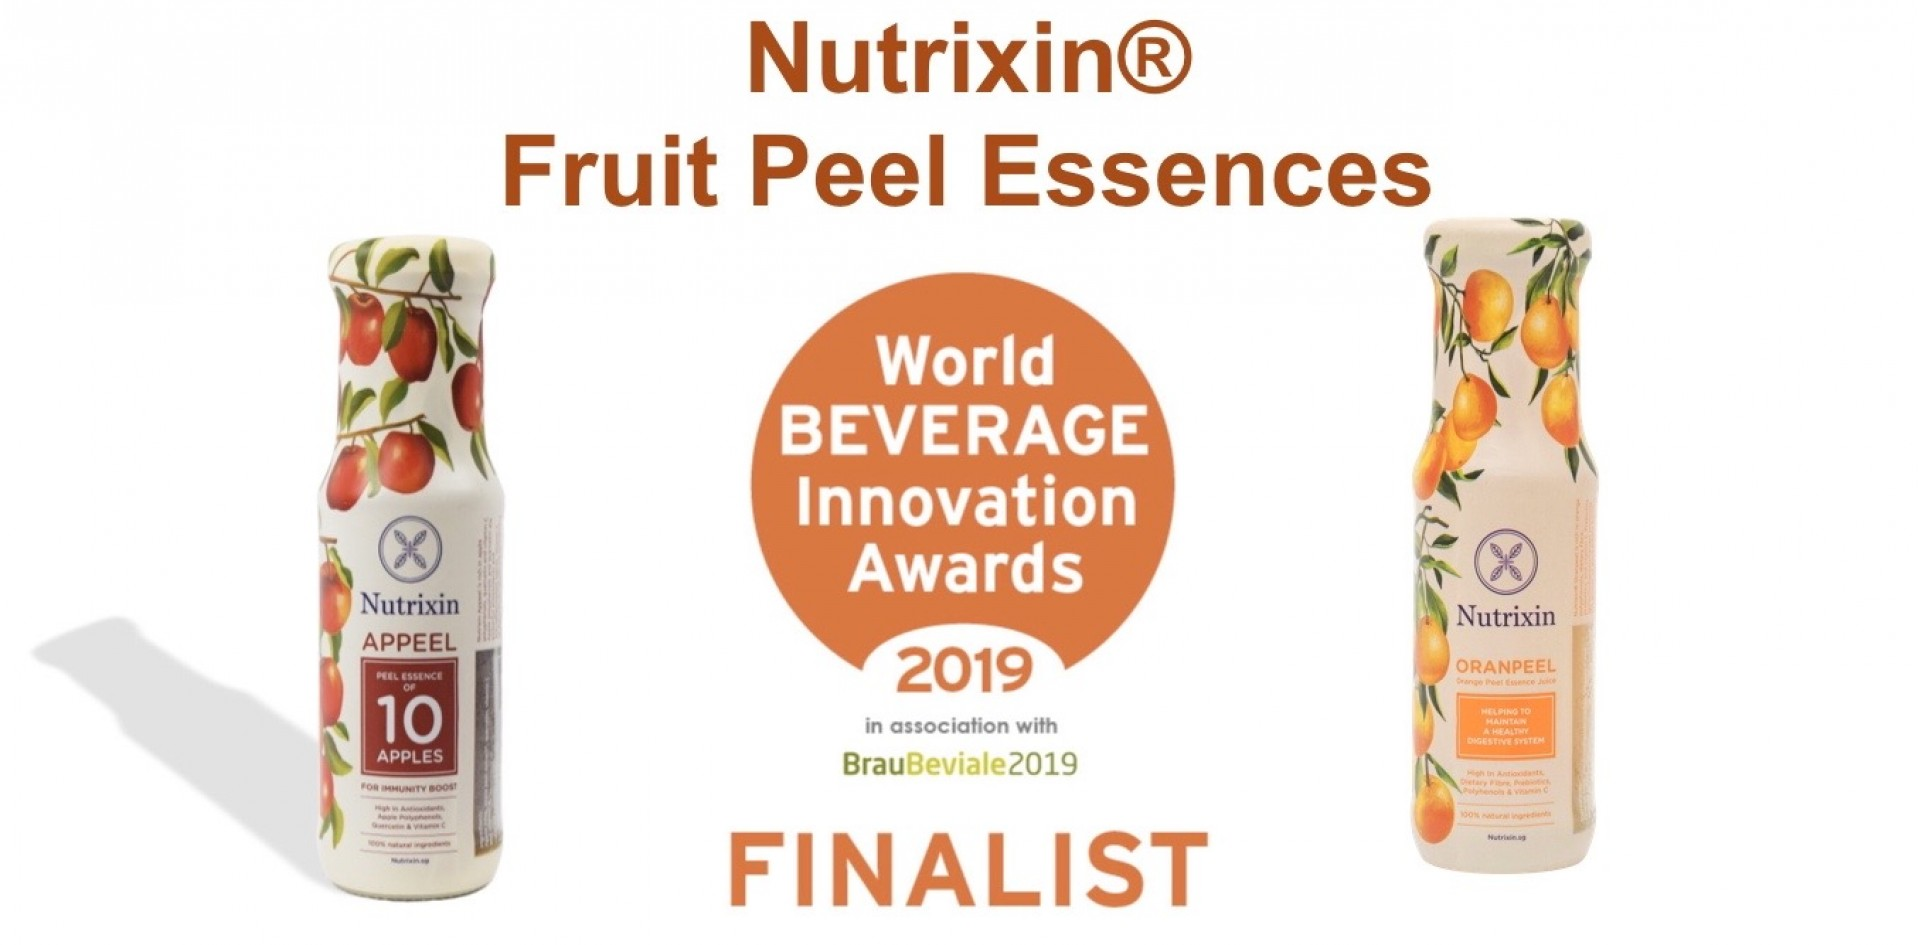 World Beverage Innovation Award 2019